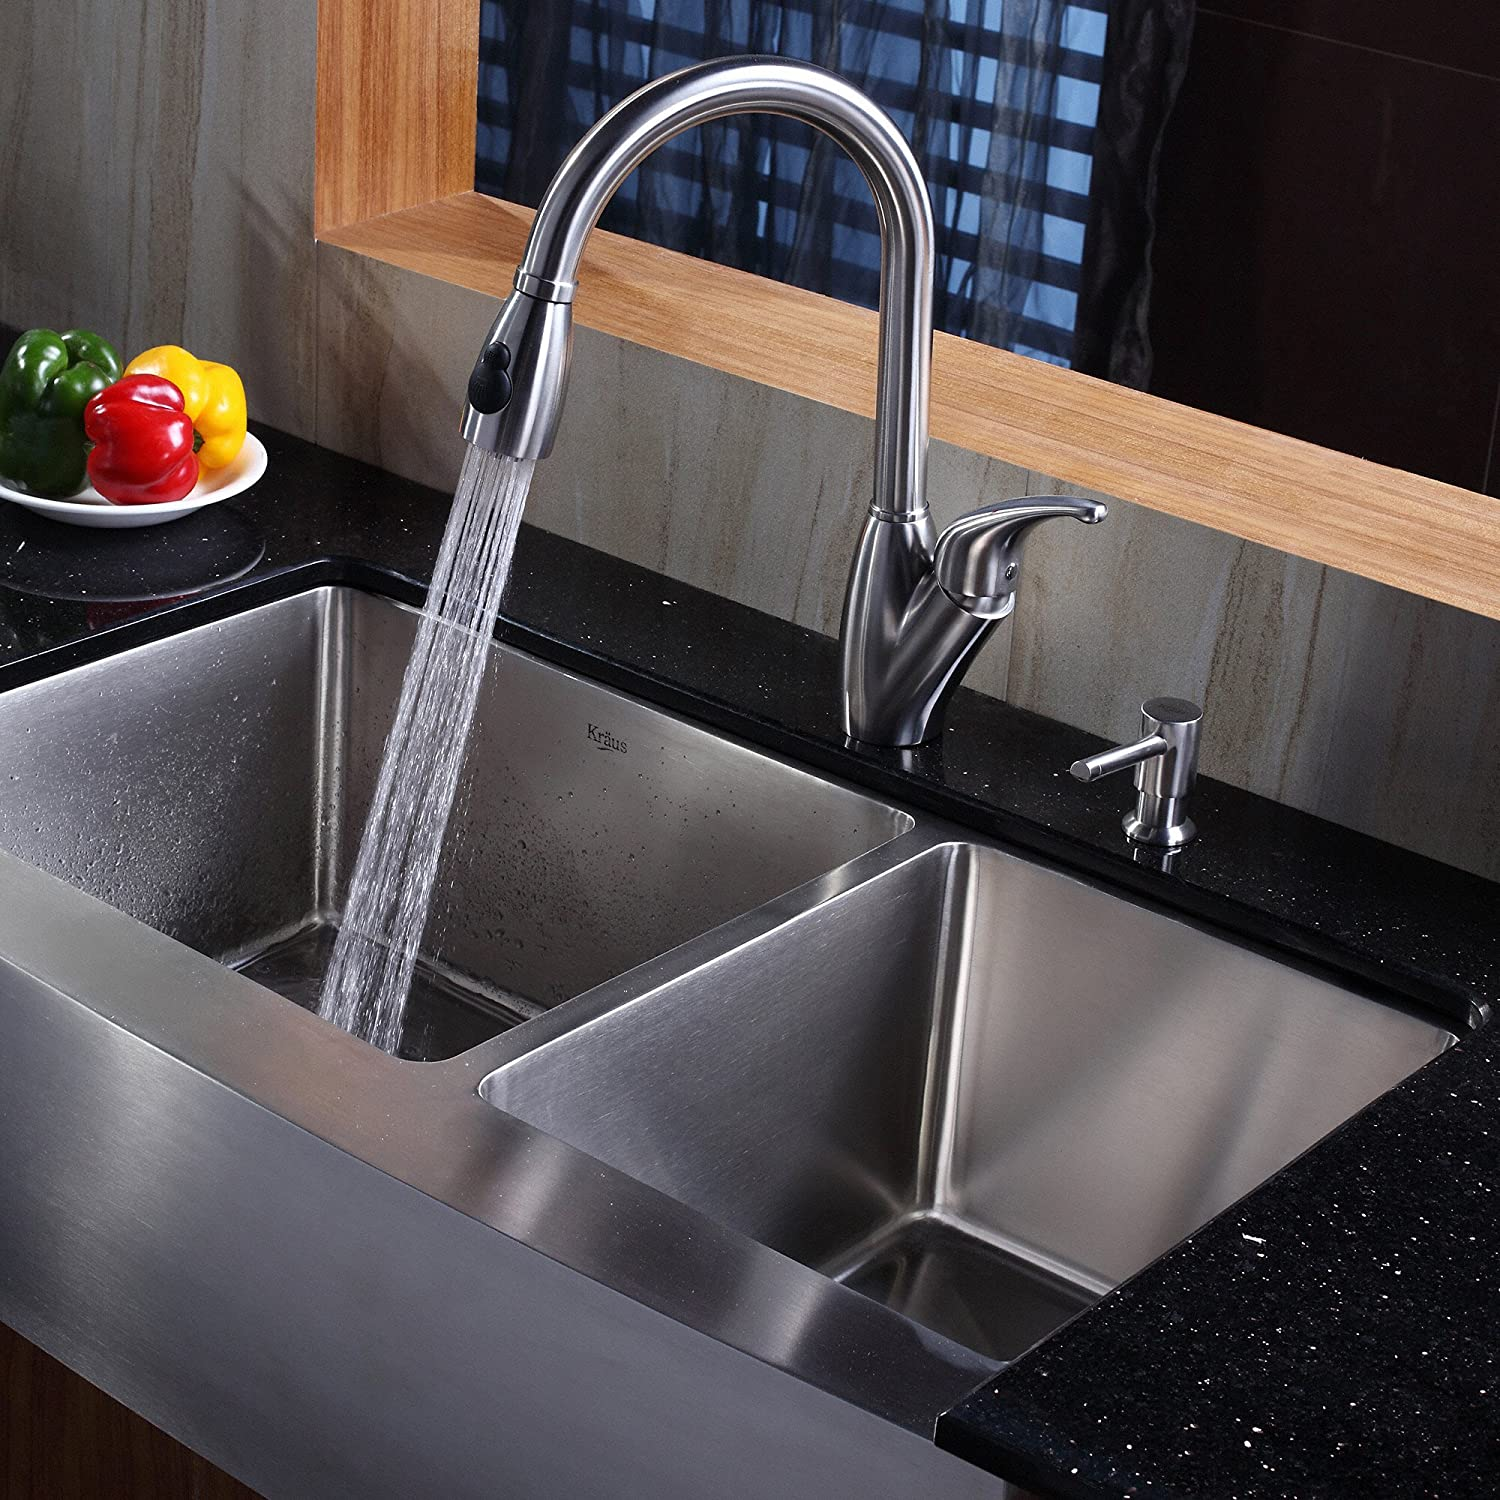 Best Stainless Steel Sinks 2017 Uncle Paul s Top 5 Choices